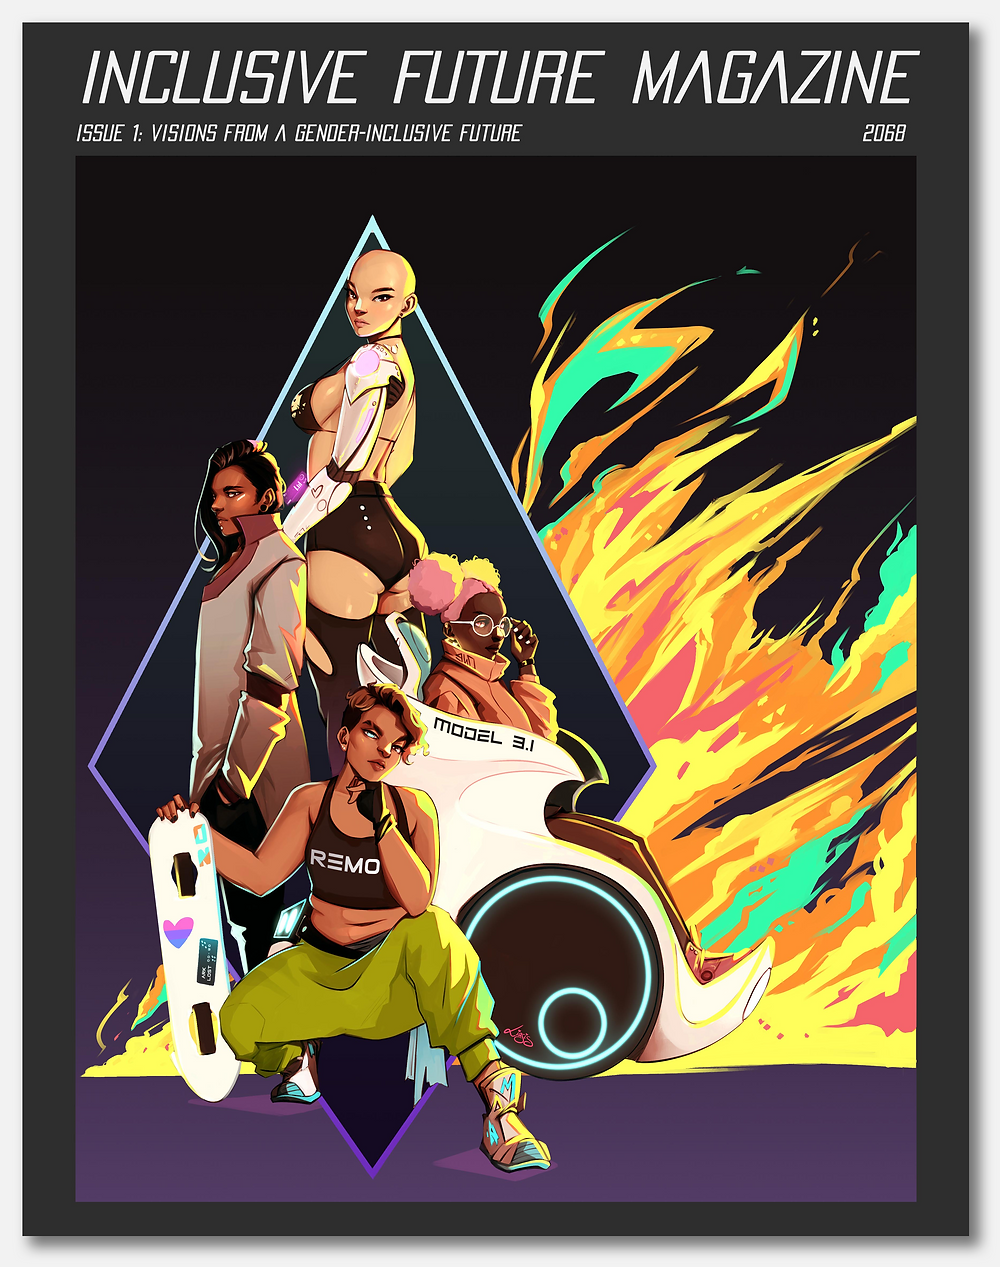 Mockup of the cover of Inclusve Future Magazine, Issue one. The cover illustration by Liasis_D is bordered by dark gray. Title: Inclusive Future Magazine. Subtitle: Issue 1: Visions from a Gender Inclusive-Future. 2068. Cover Illustration: In the foreground: four figures of various races, gender presentations, and ability. In the background: a mutli-colored fire explodes to the right from a neon diamond.